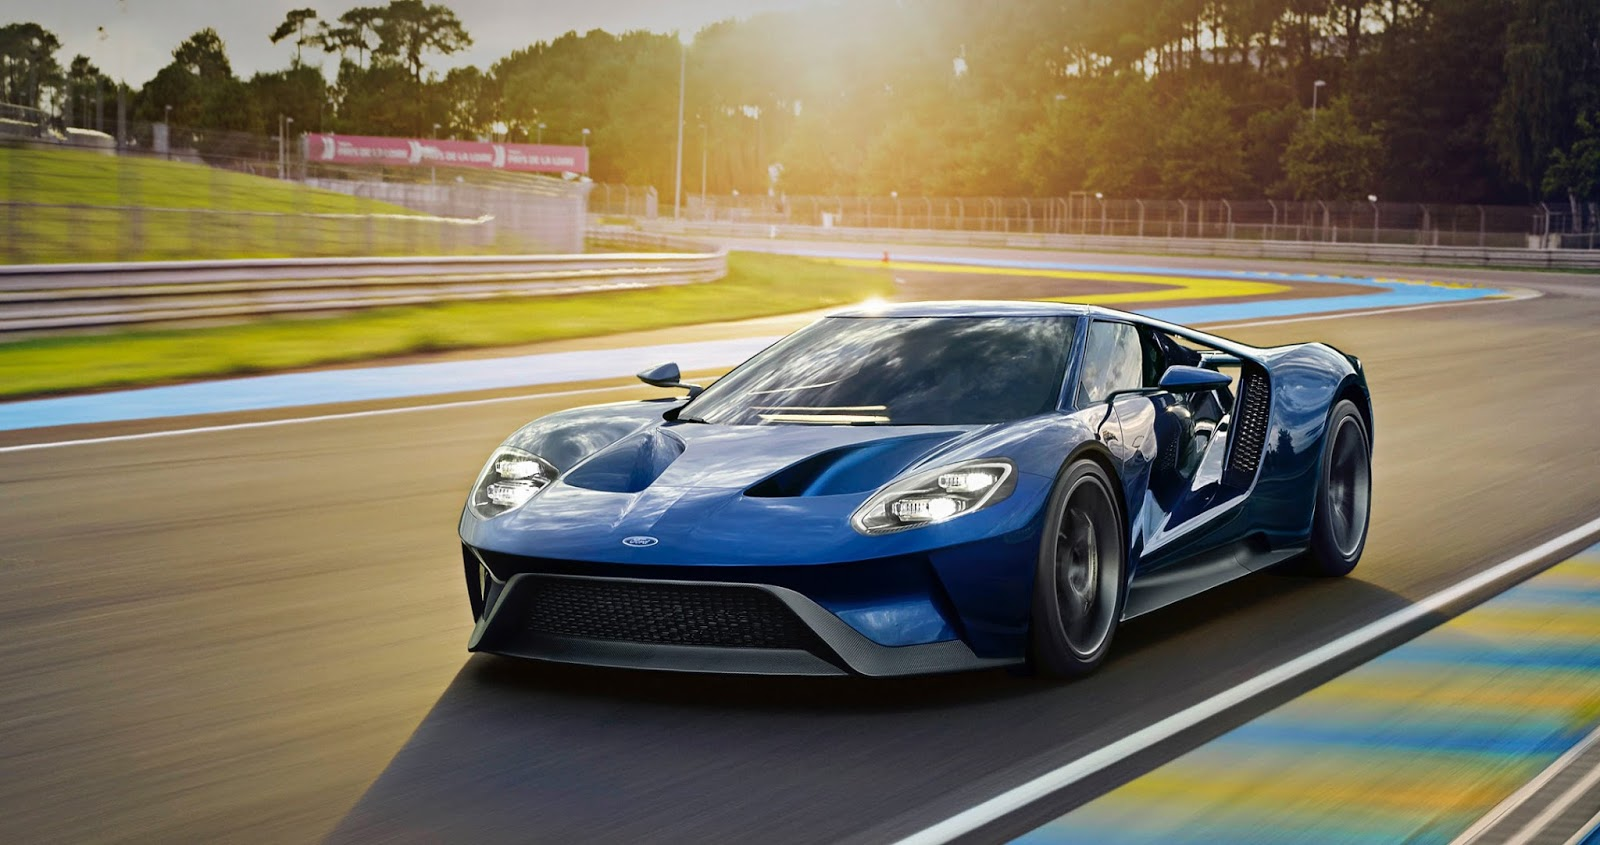 Would It Be Too Much To Hope For Ford Philippines To Make Available A Test Drive Unit Of The All New Ford Gt